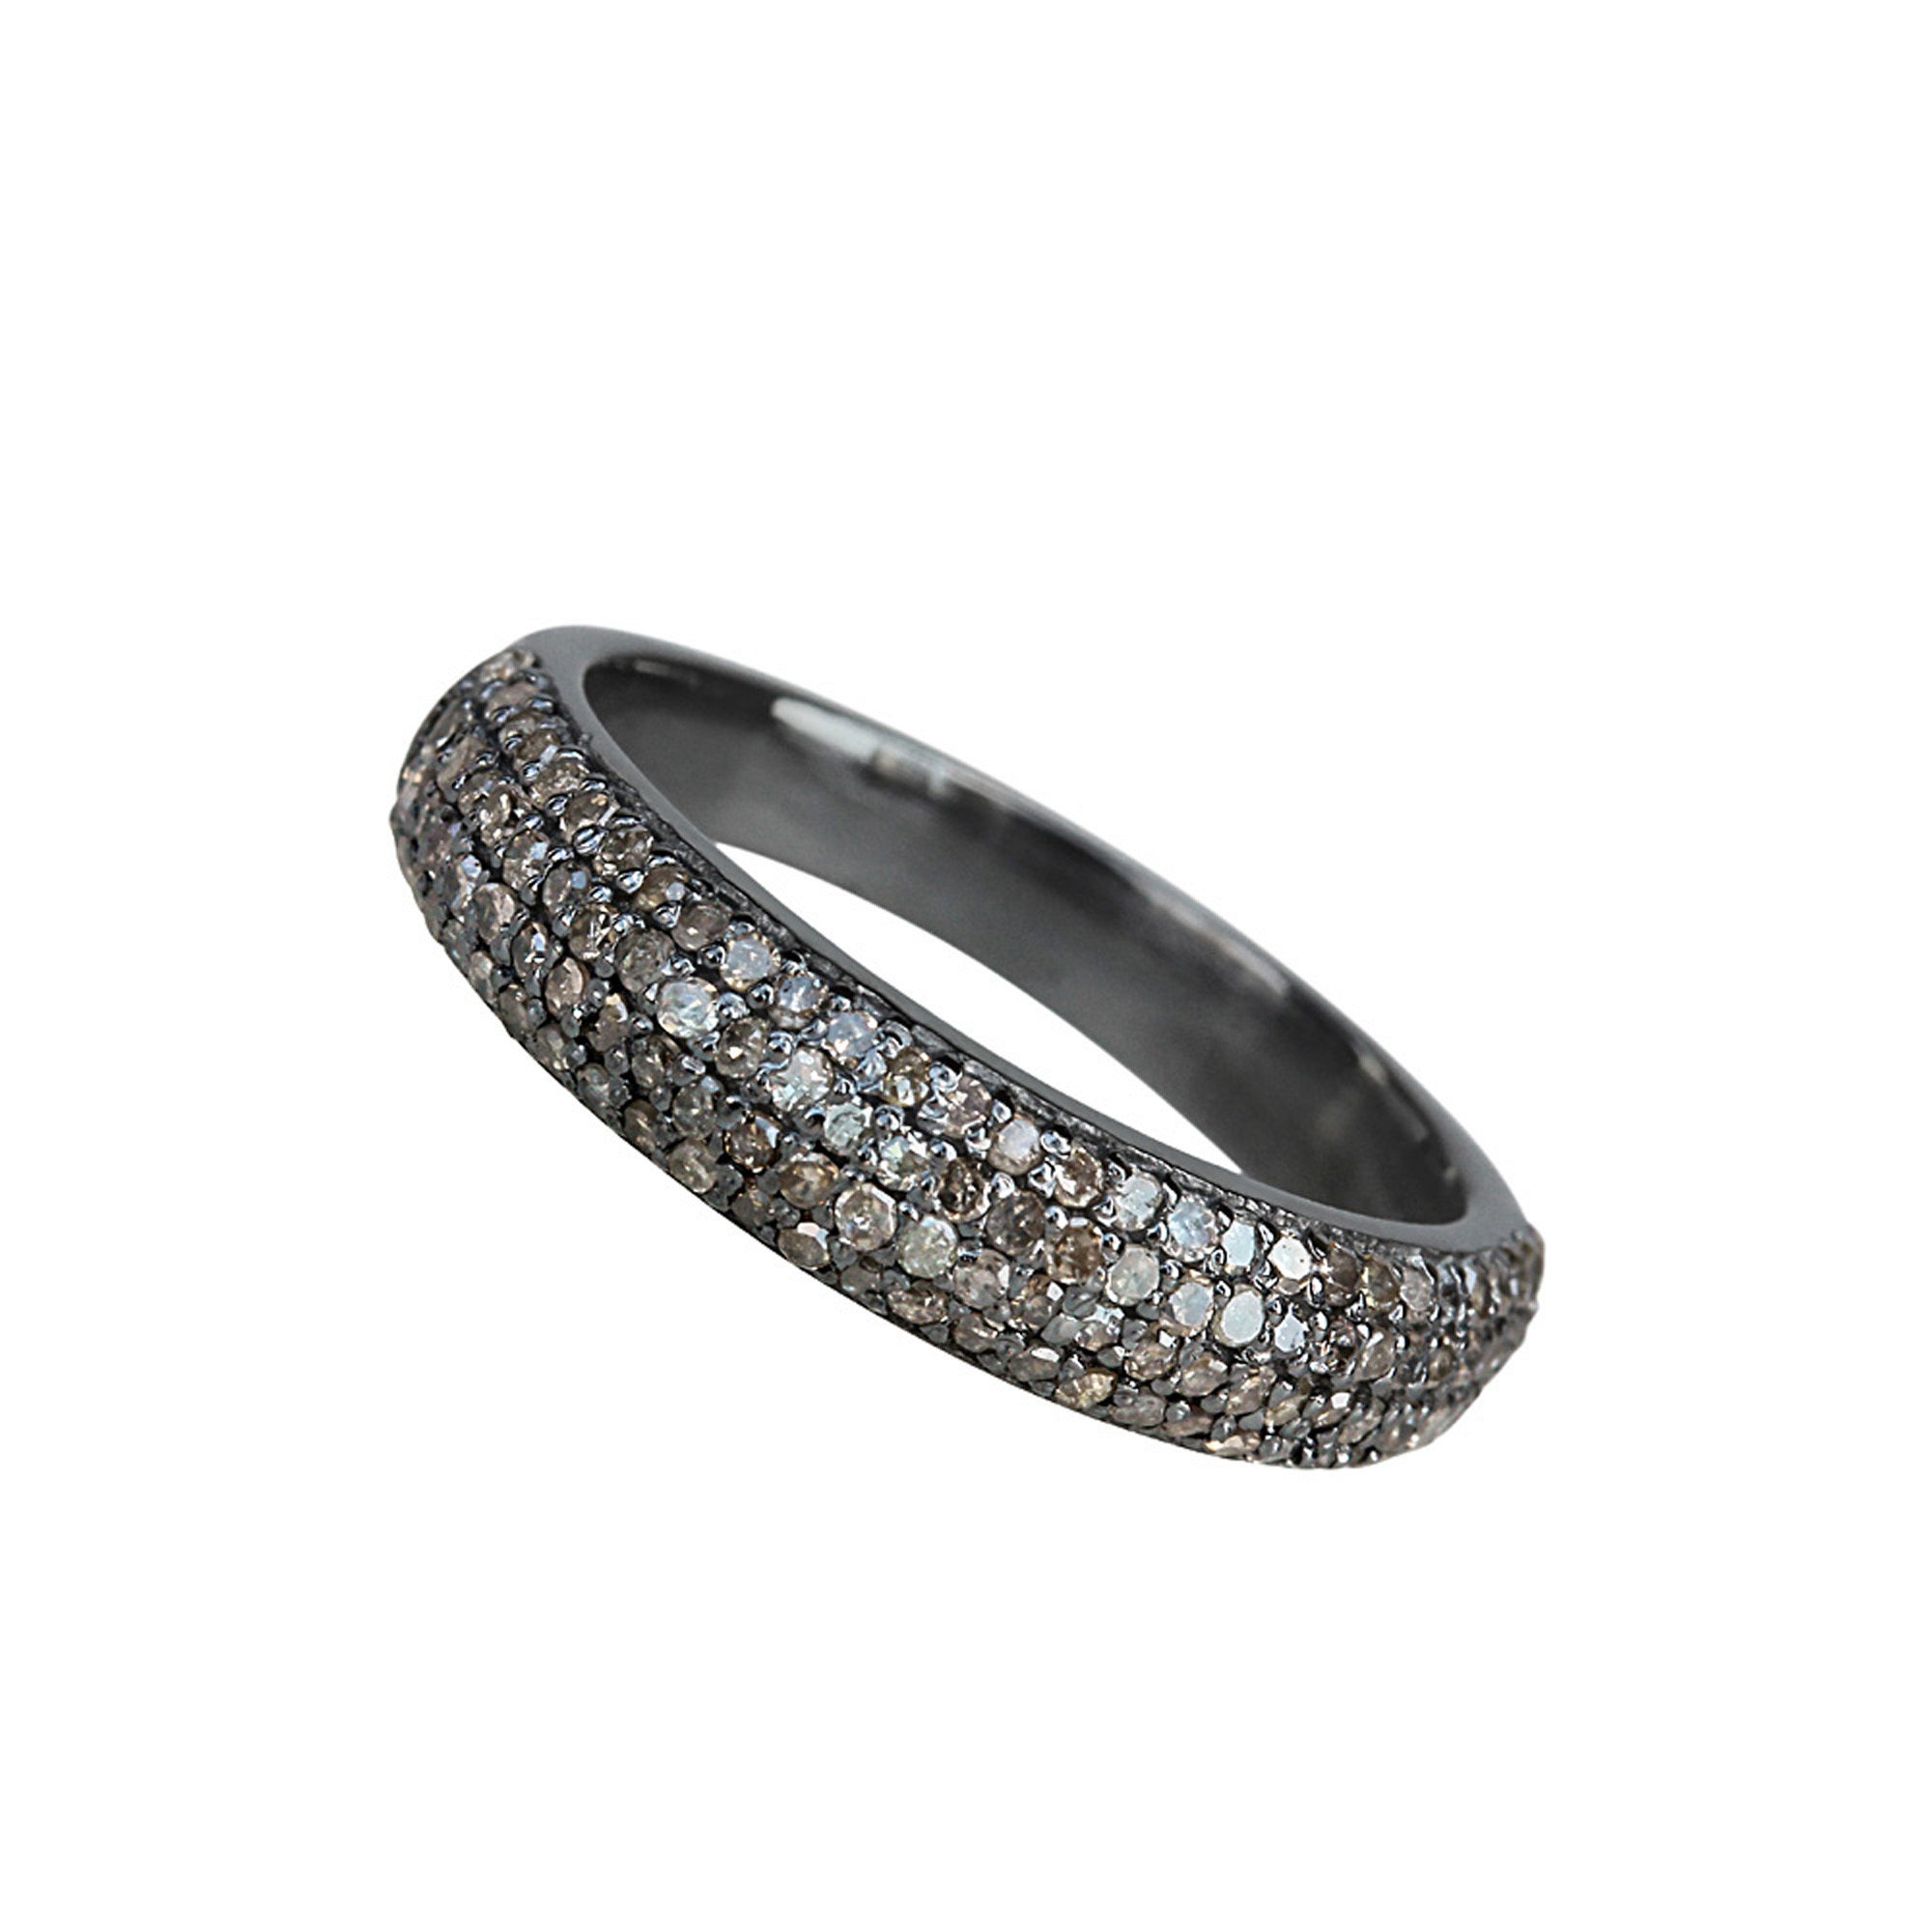 Natural pave diamond full eternity band made in 925 sterling silver